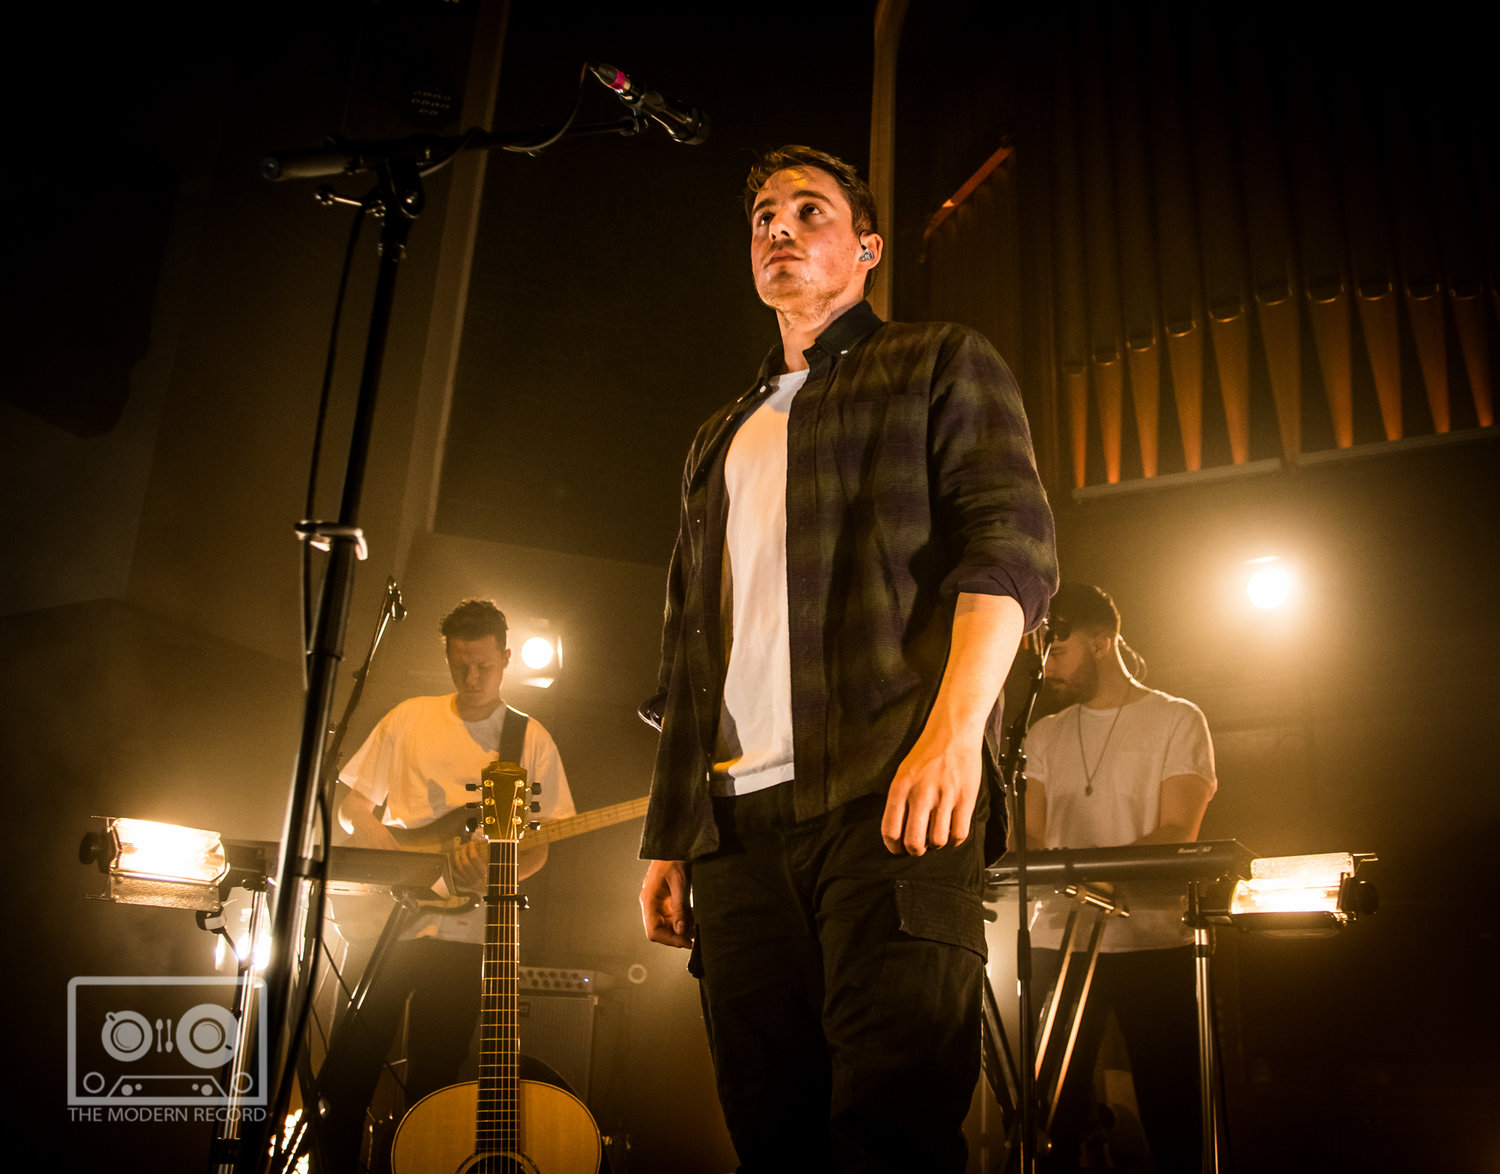 DERMOT KENNEDY PERFORMING AT ST LUKE'S, GLASGOW - 20.02.2018  PICTURE: STEPHEN WILSON PHOTOGRAPHY